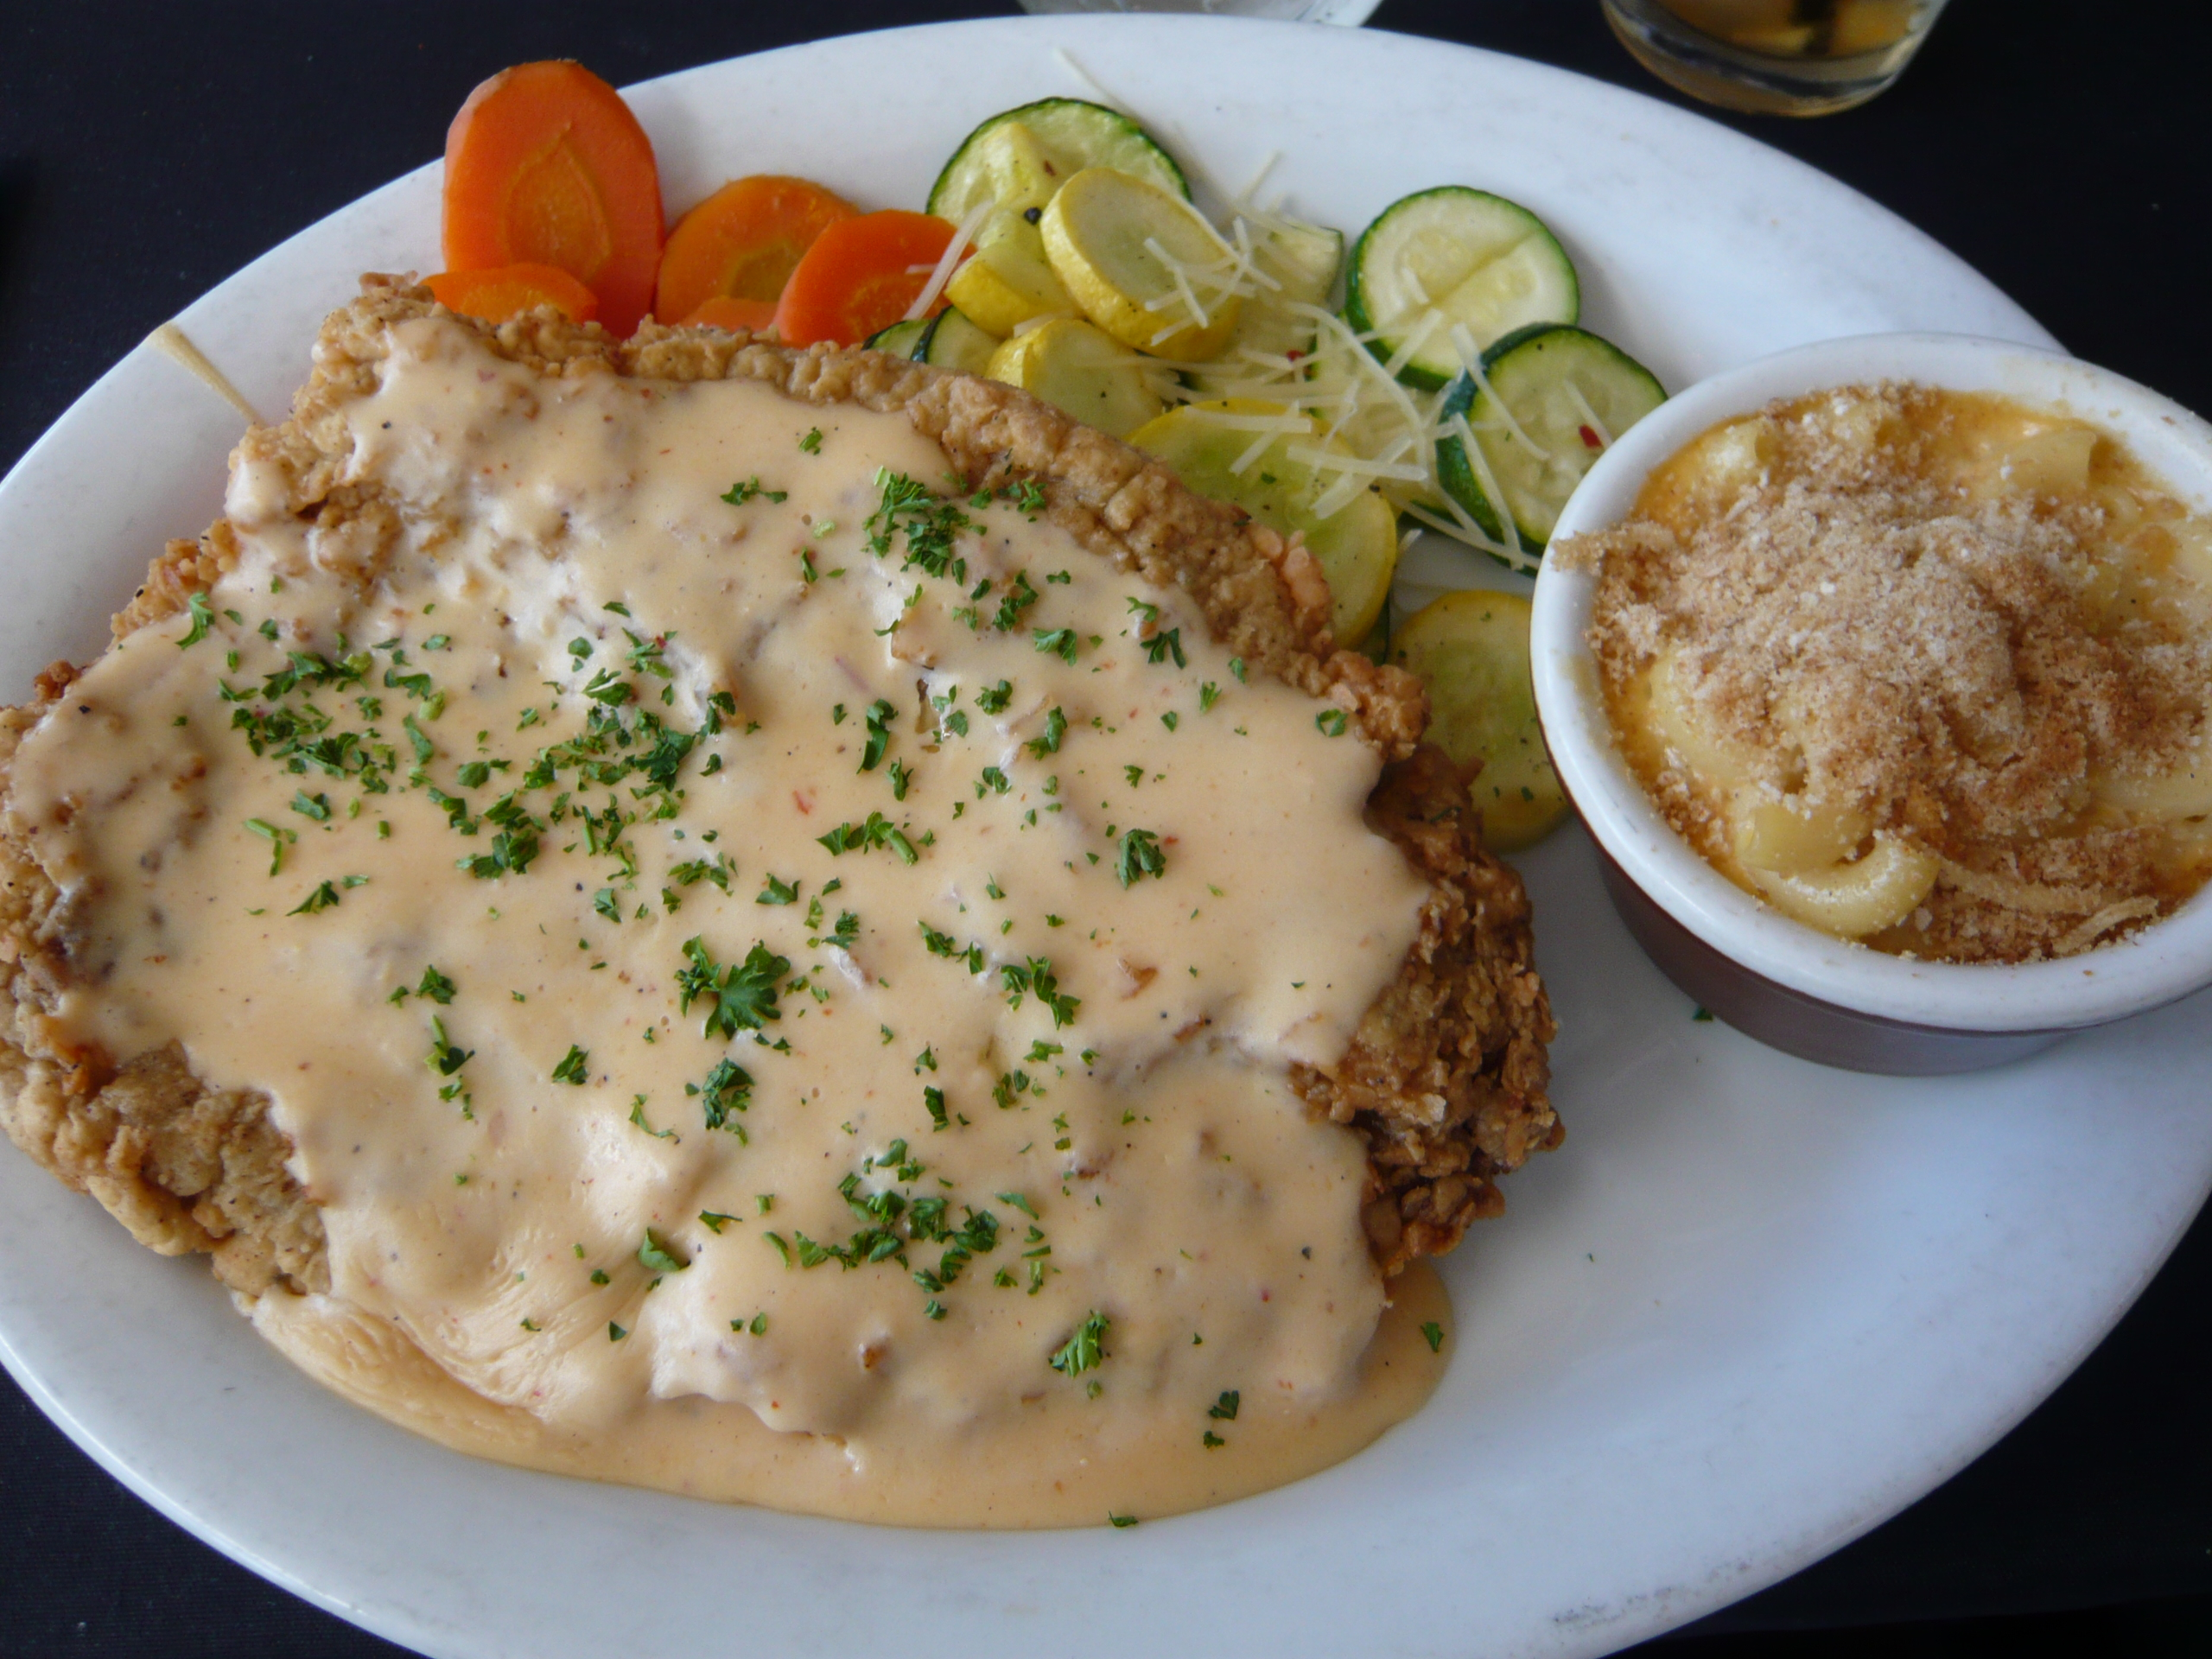 File:Flickr wordridden 3397801155--Chicken fried steak.jpg - Wikipedia